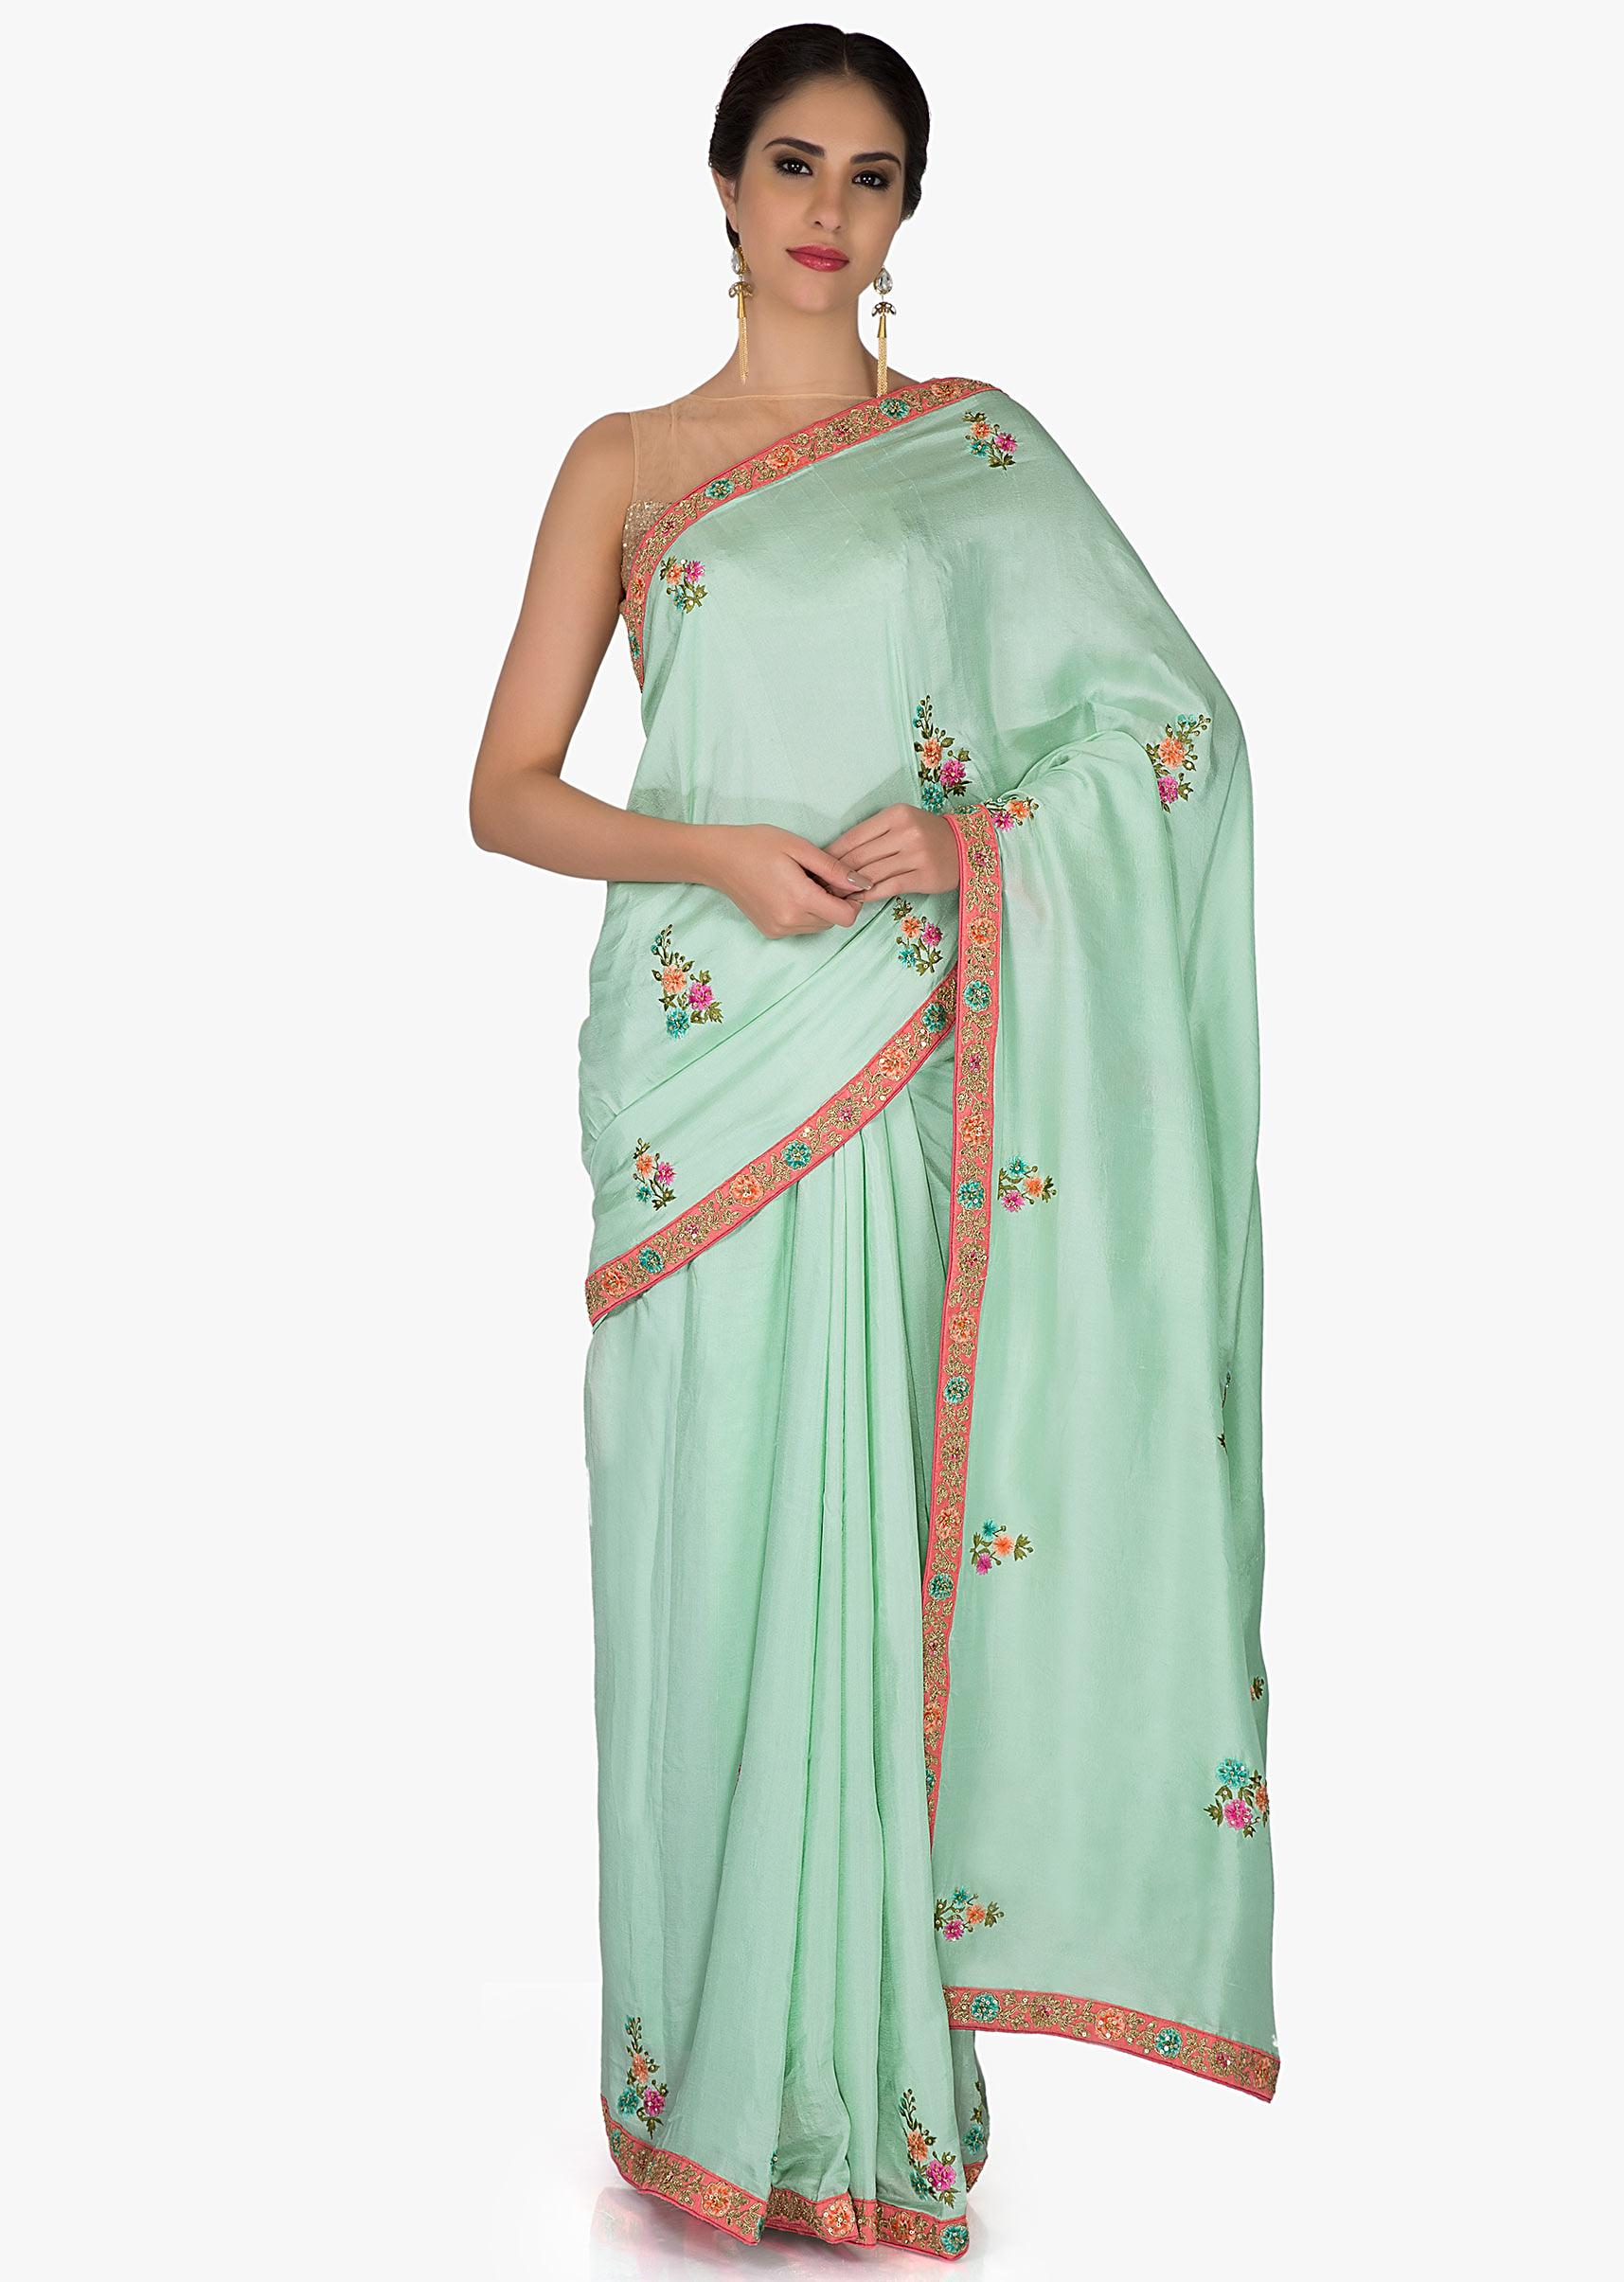 2204f5c041fb3 Sea Green Silk Saree and Pink Raw Silk Blouse with Resham Butti and Sequins  only on KalkiMore Detail